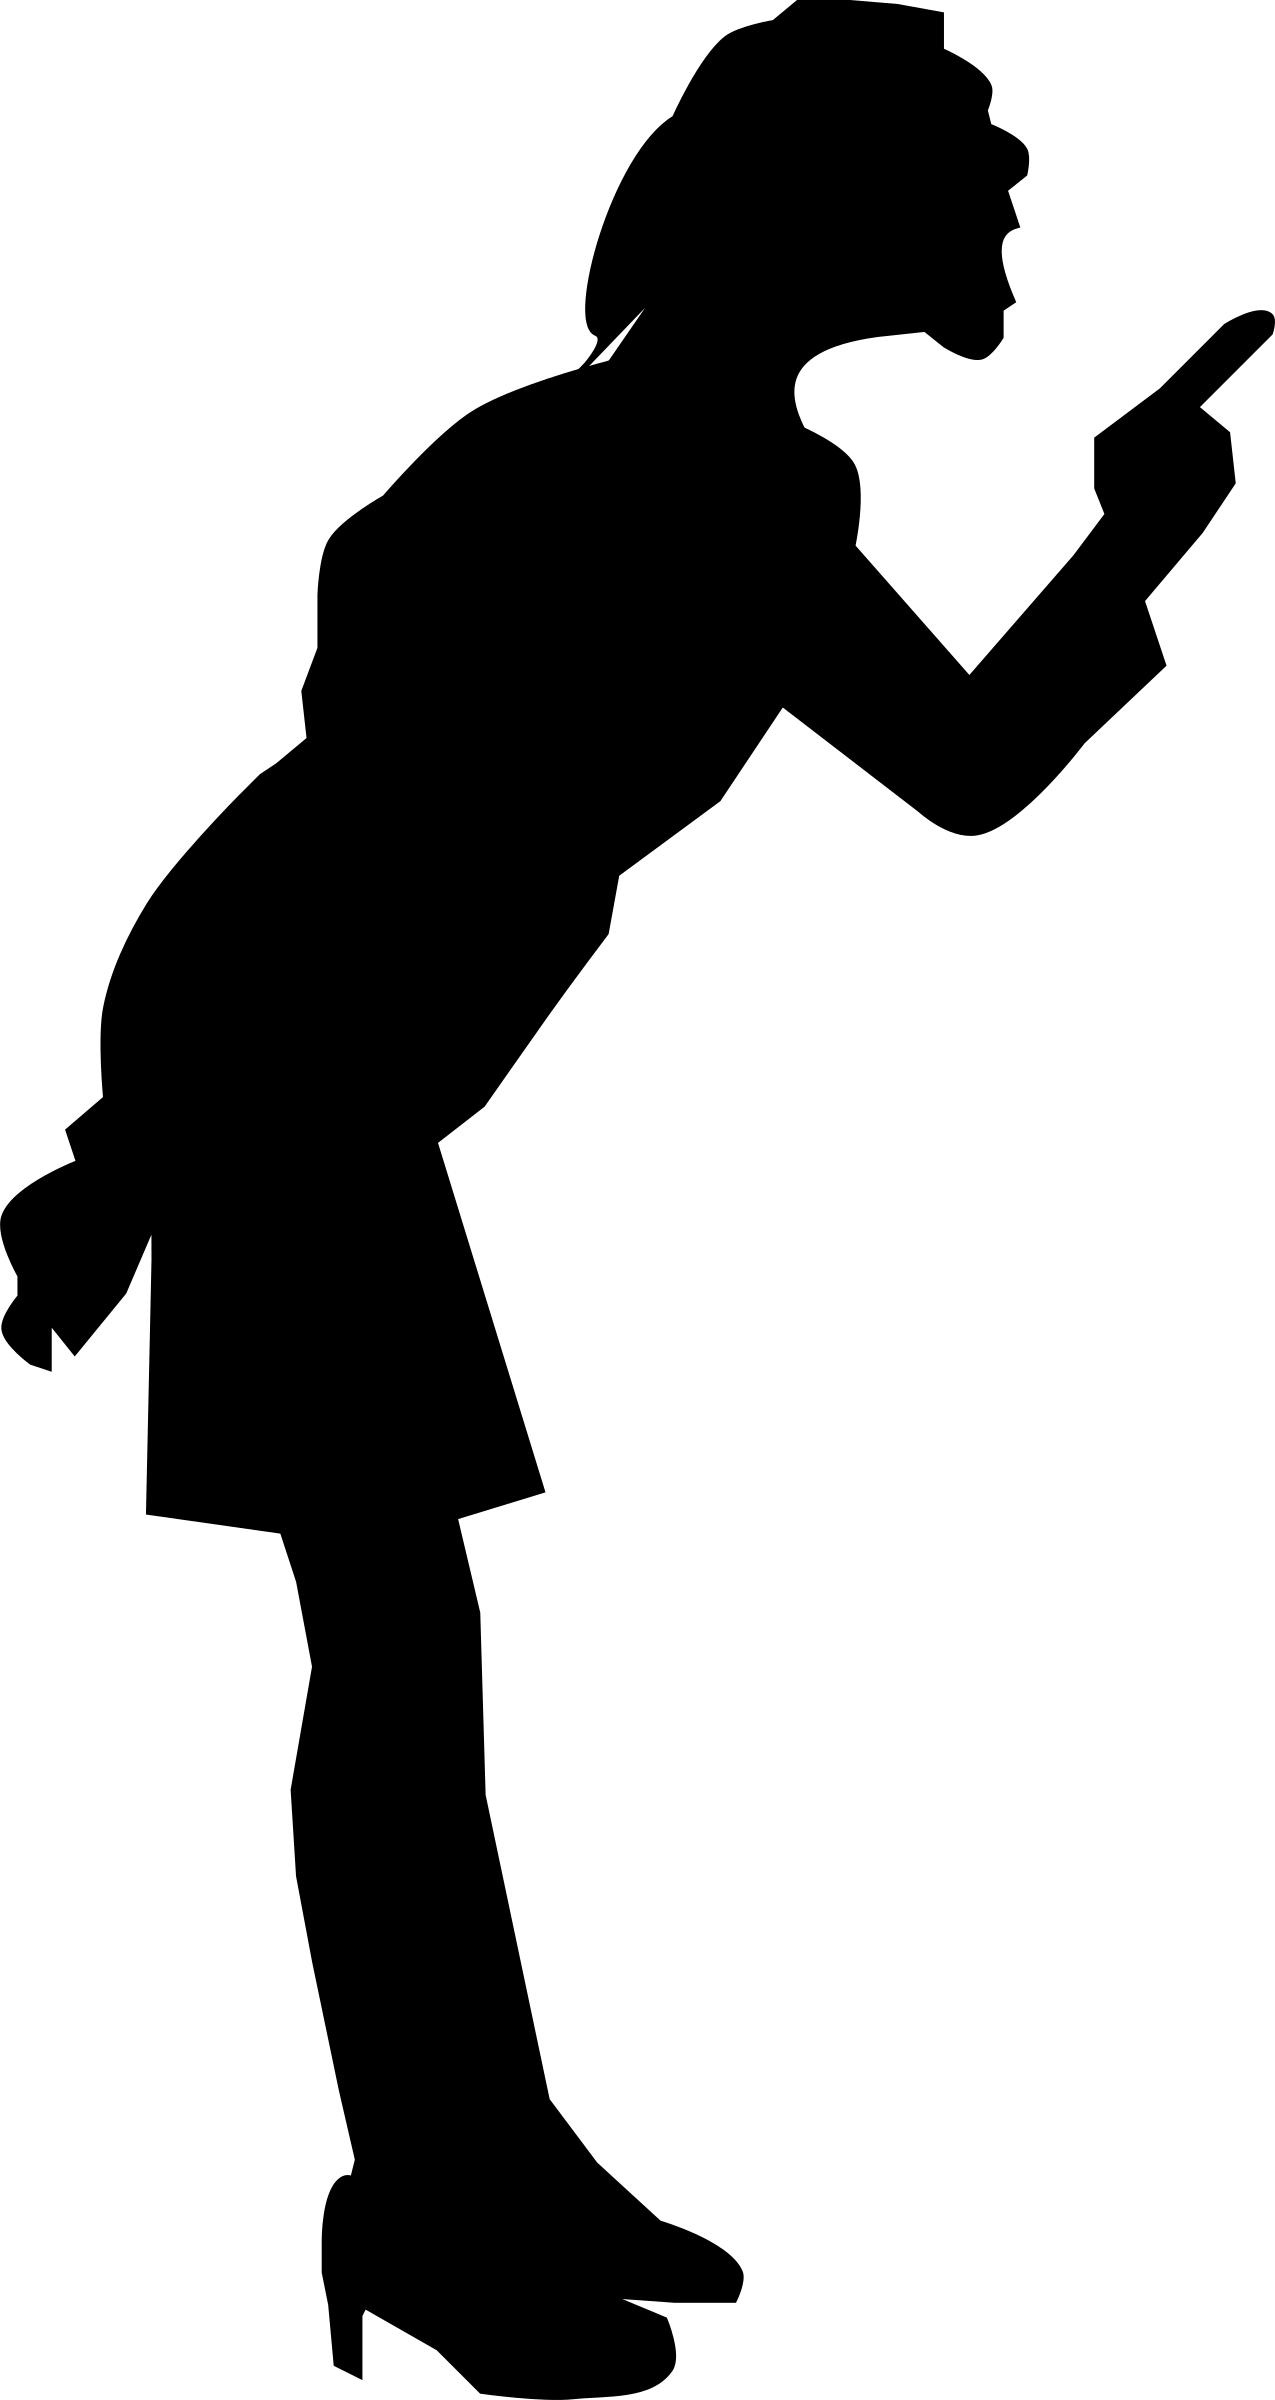 Woman icons png free. Angry clipart angry lady